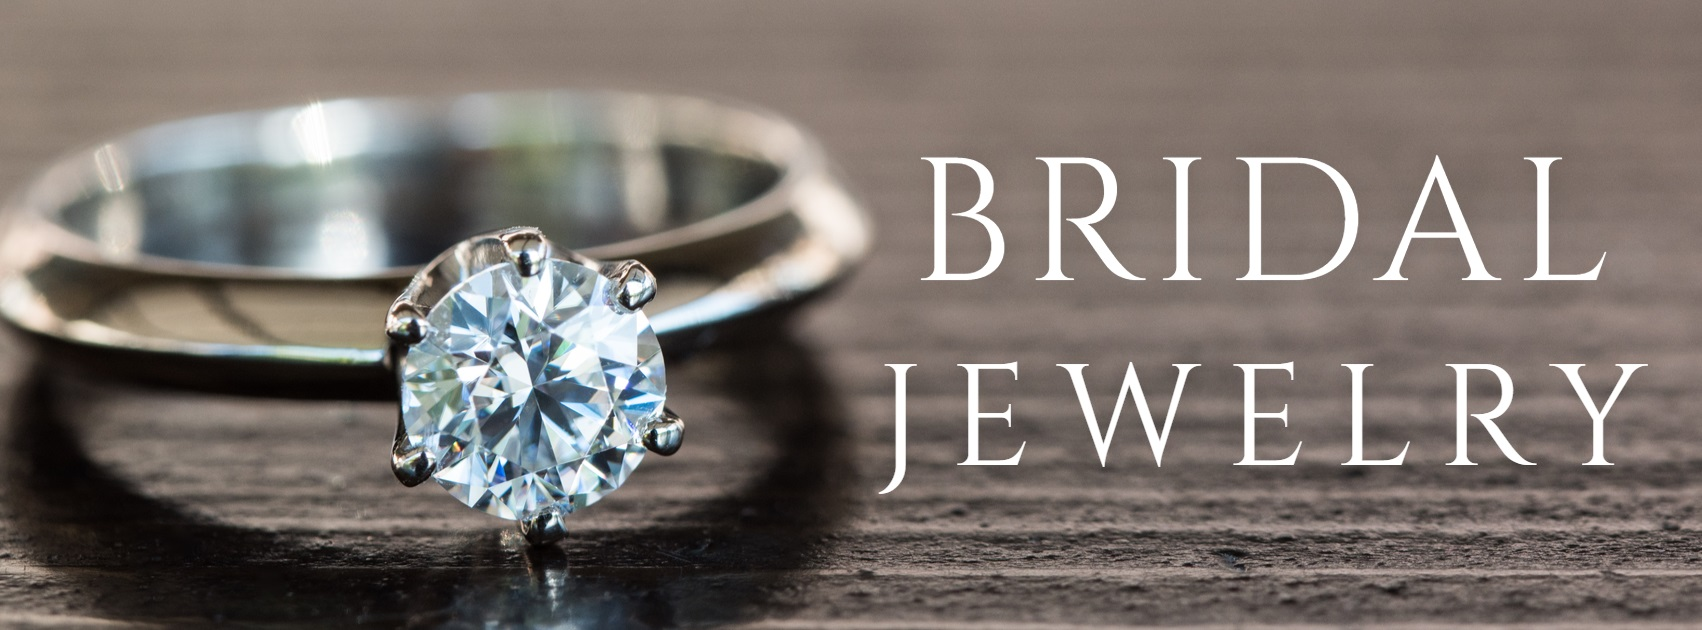 Shop Bridal Jewelry - Antwerp Diamonds of Buckhead - Atlanta Jewelry Store